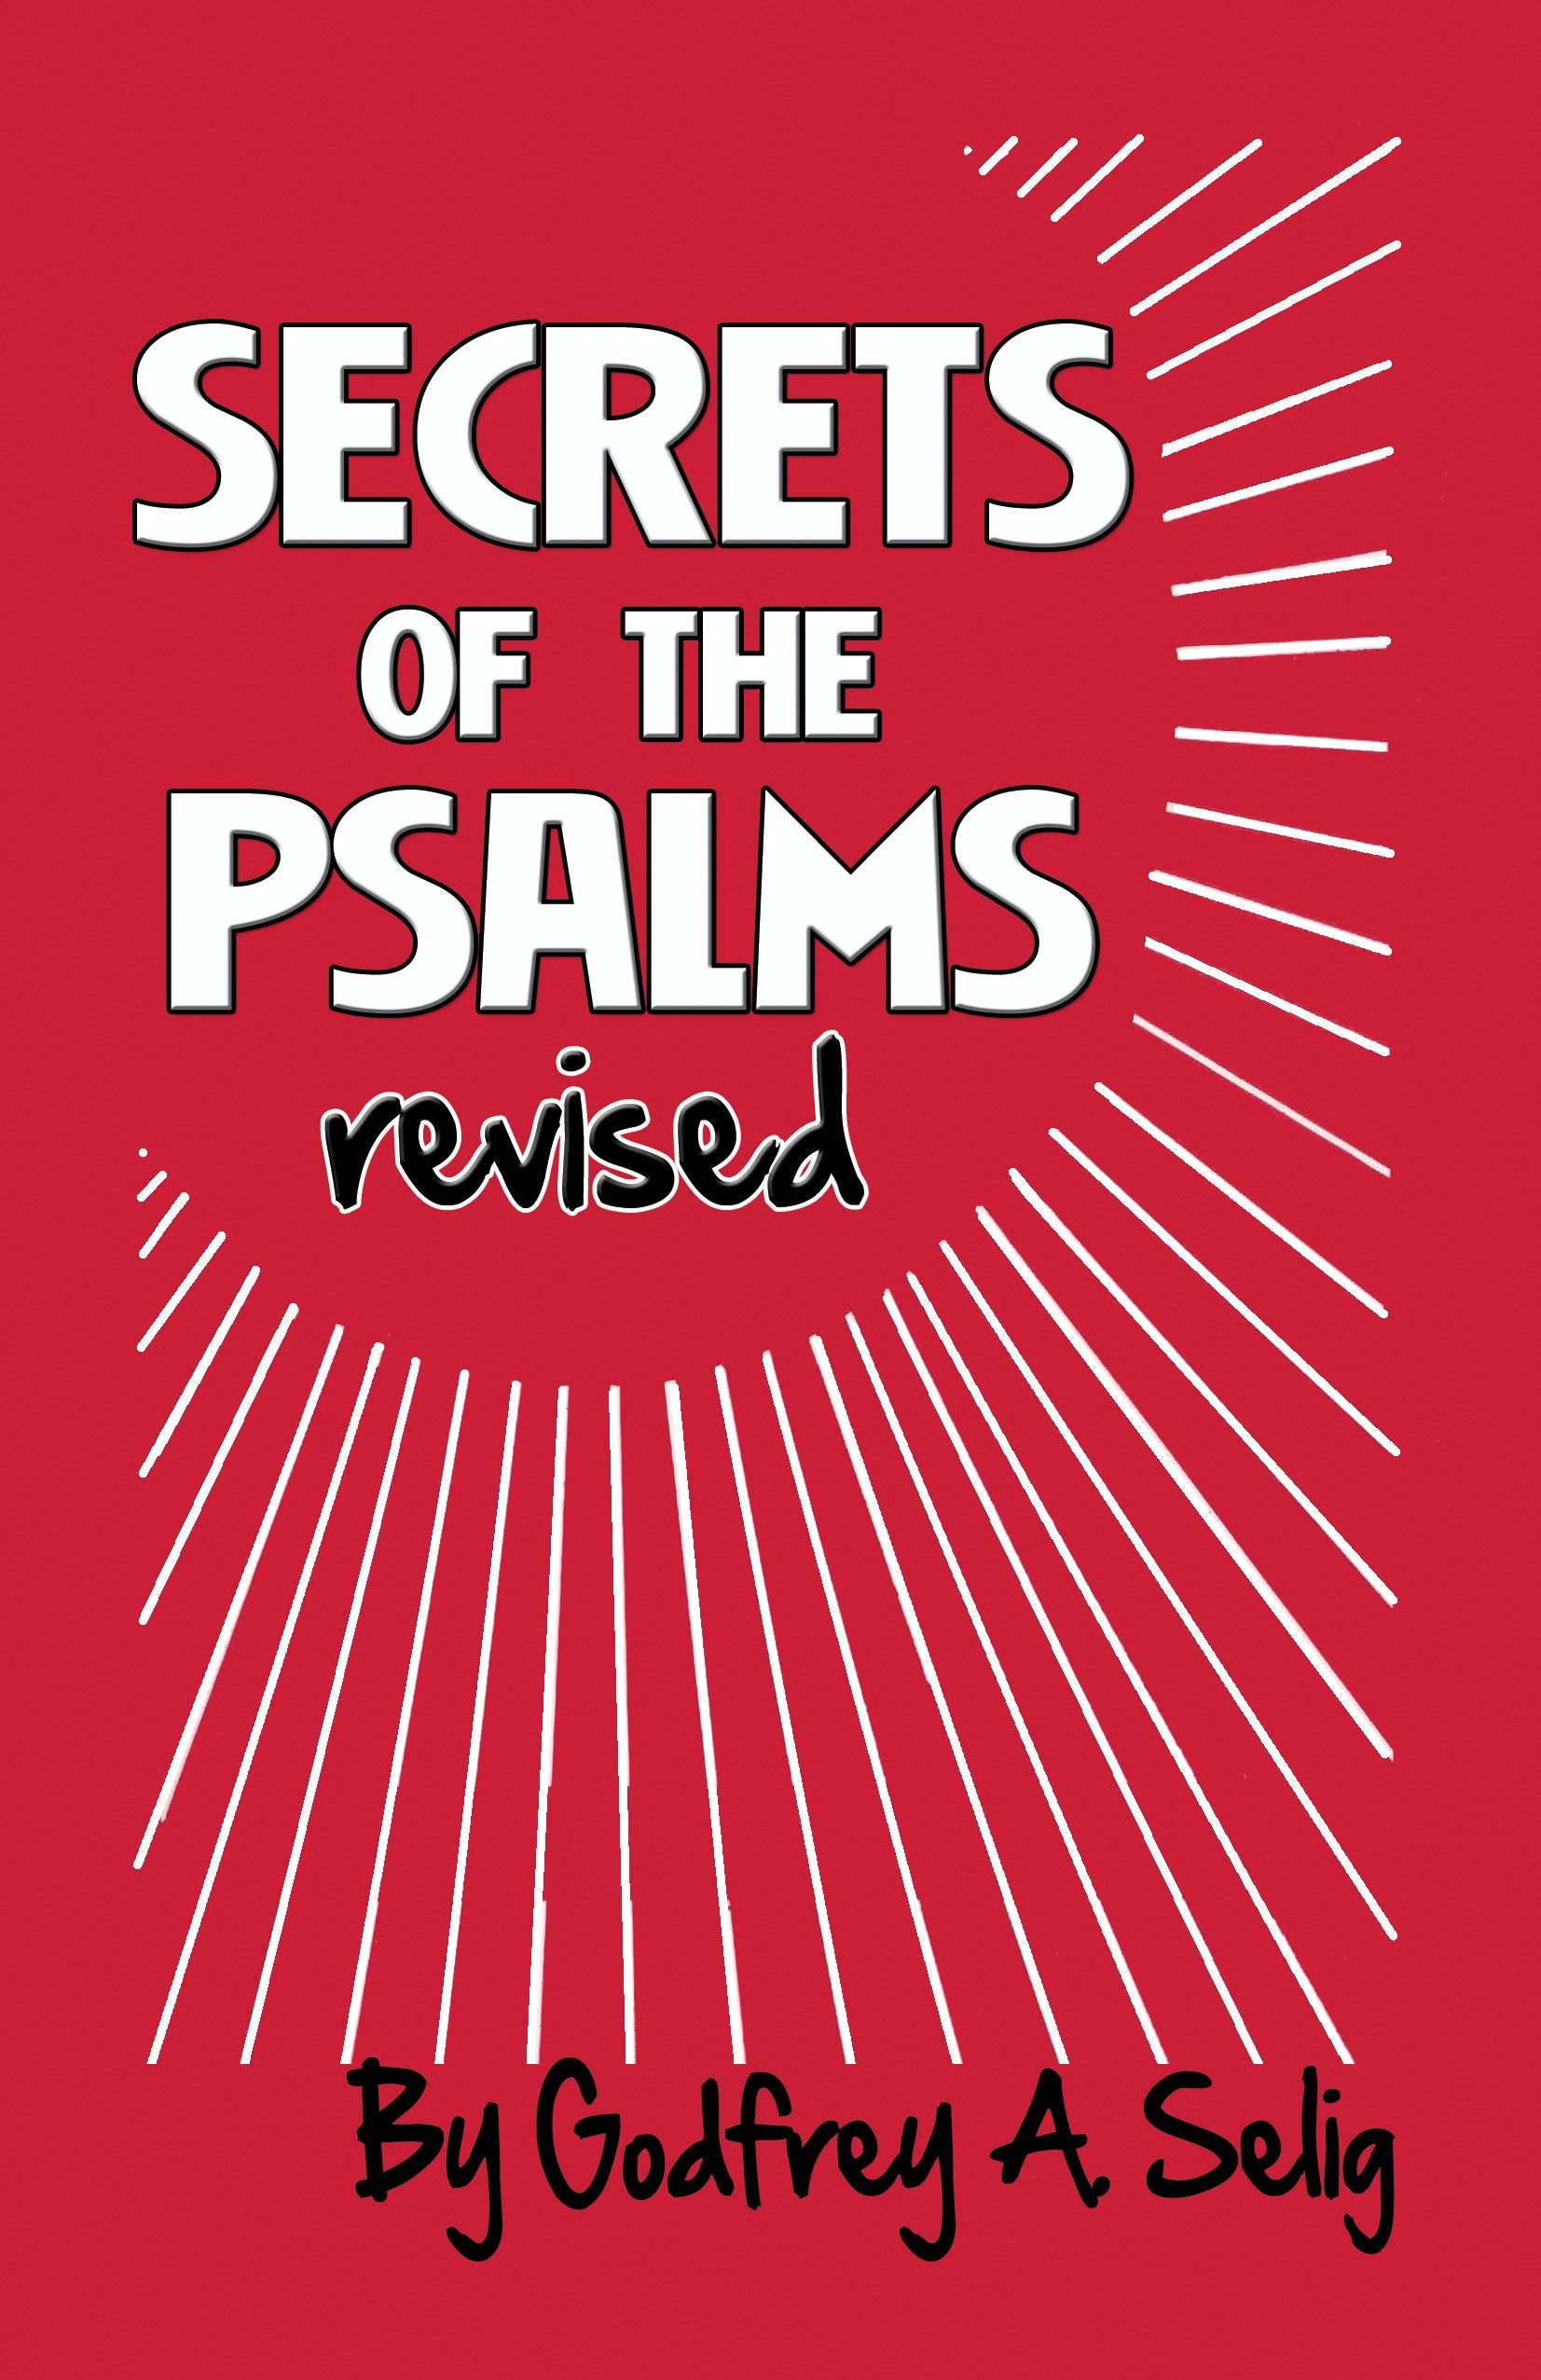 Secrets of the Psalms: The key to answered prayers from the King